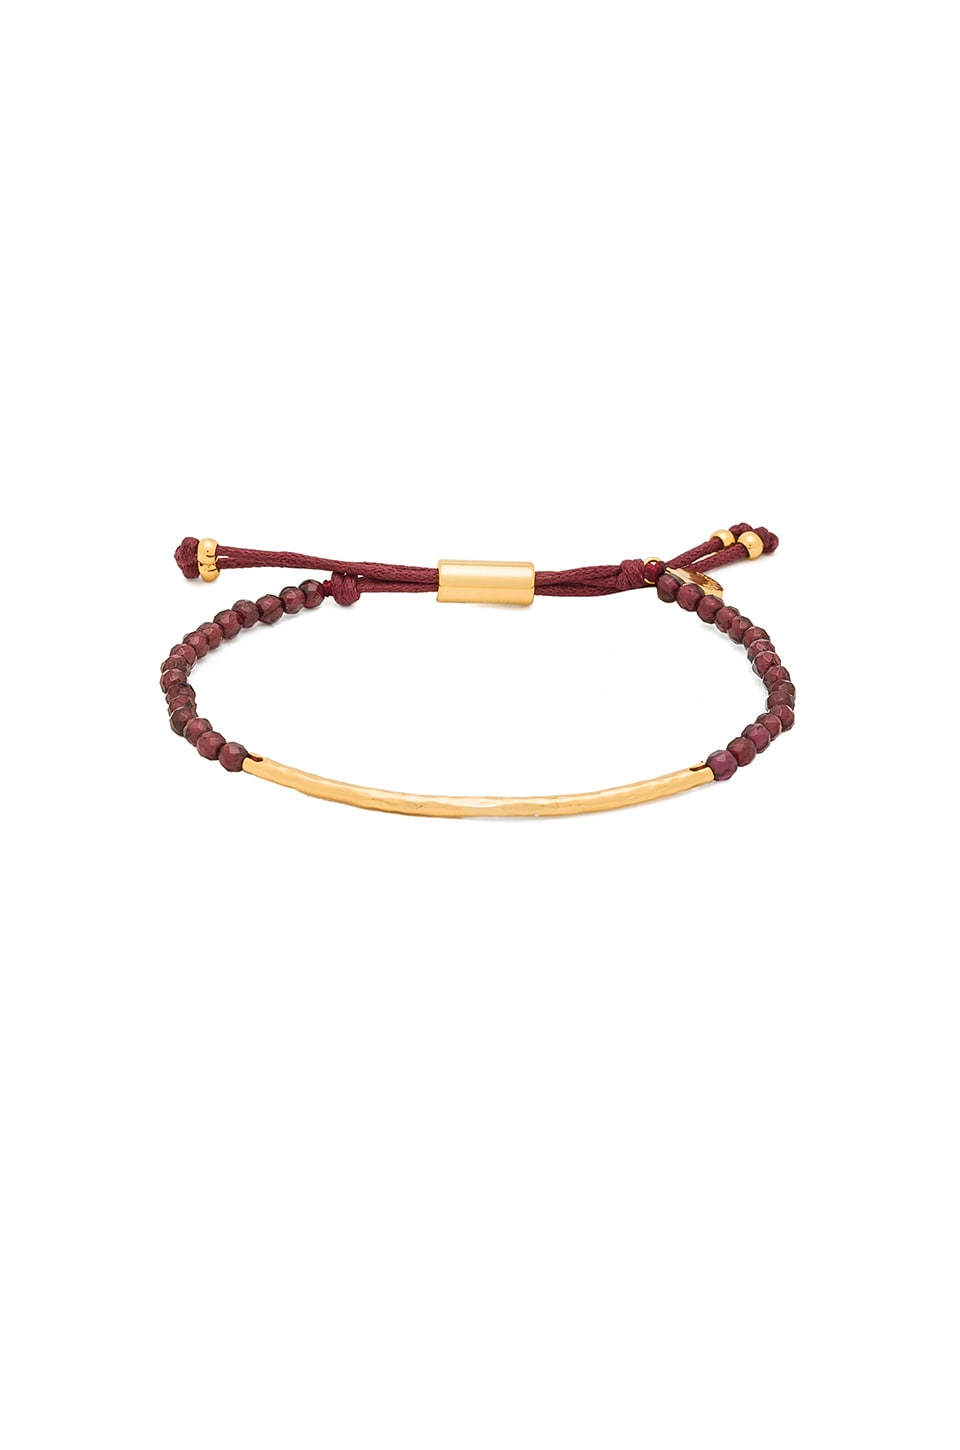 gorjana Power Gemstone Bracelet in Gold & Garnet